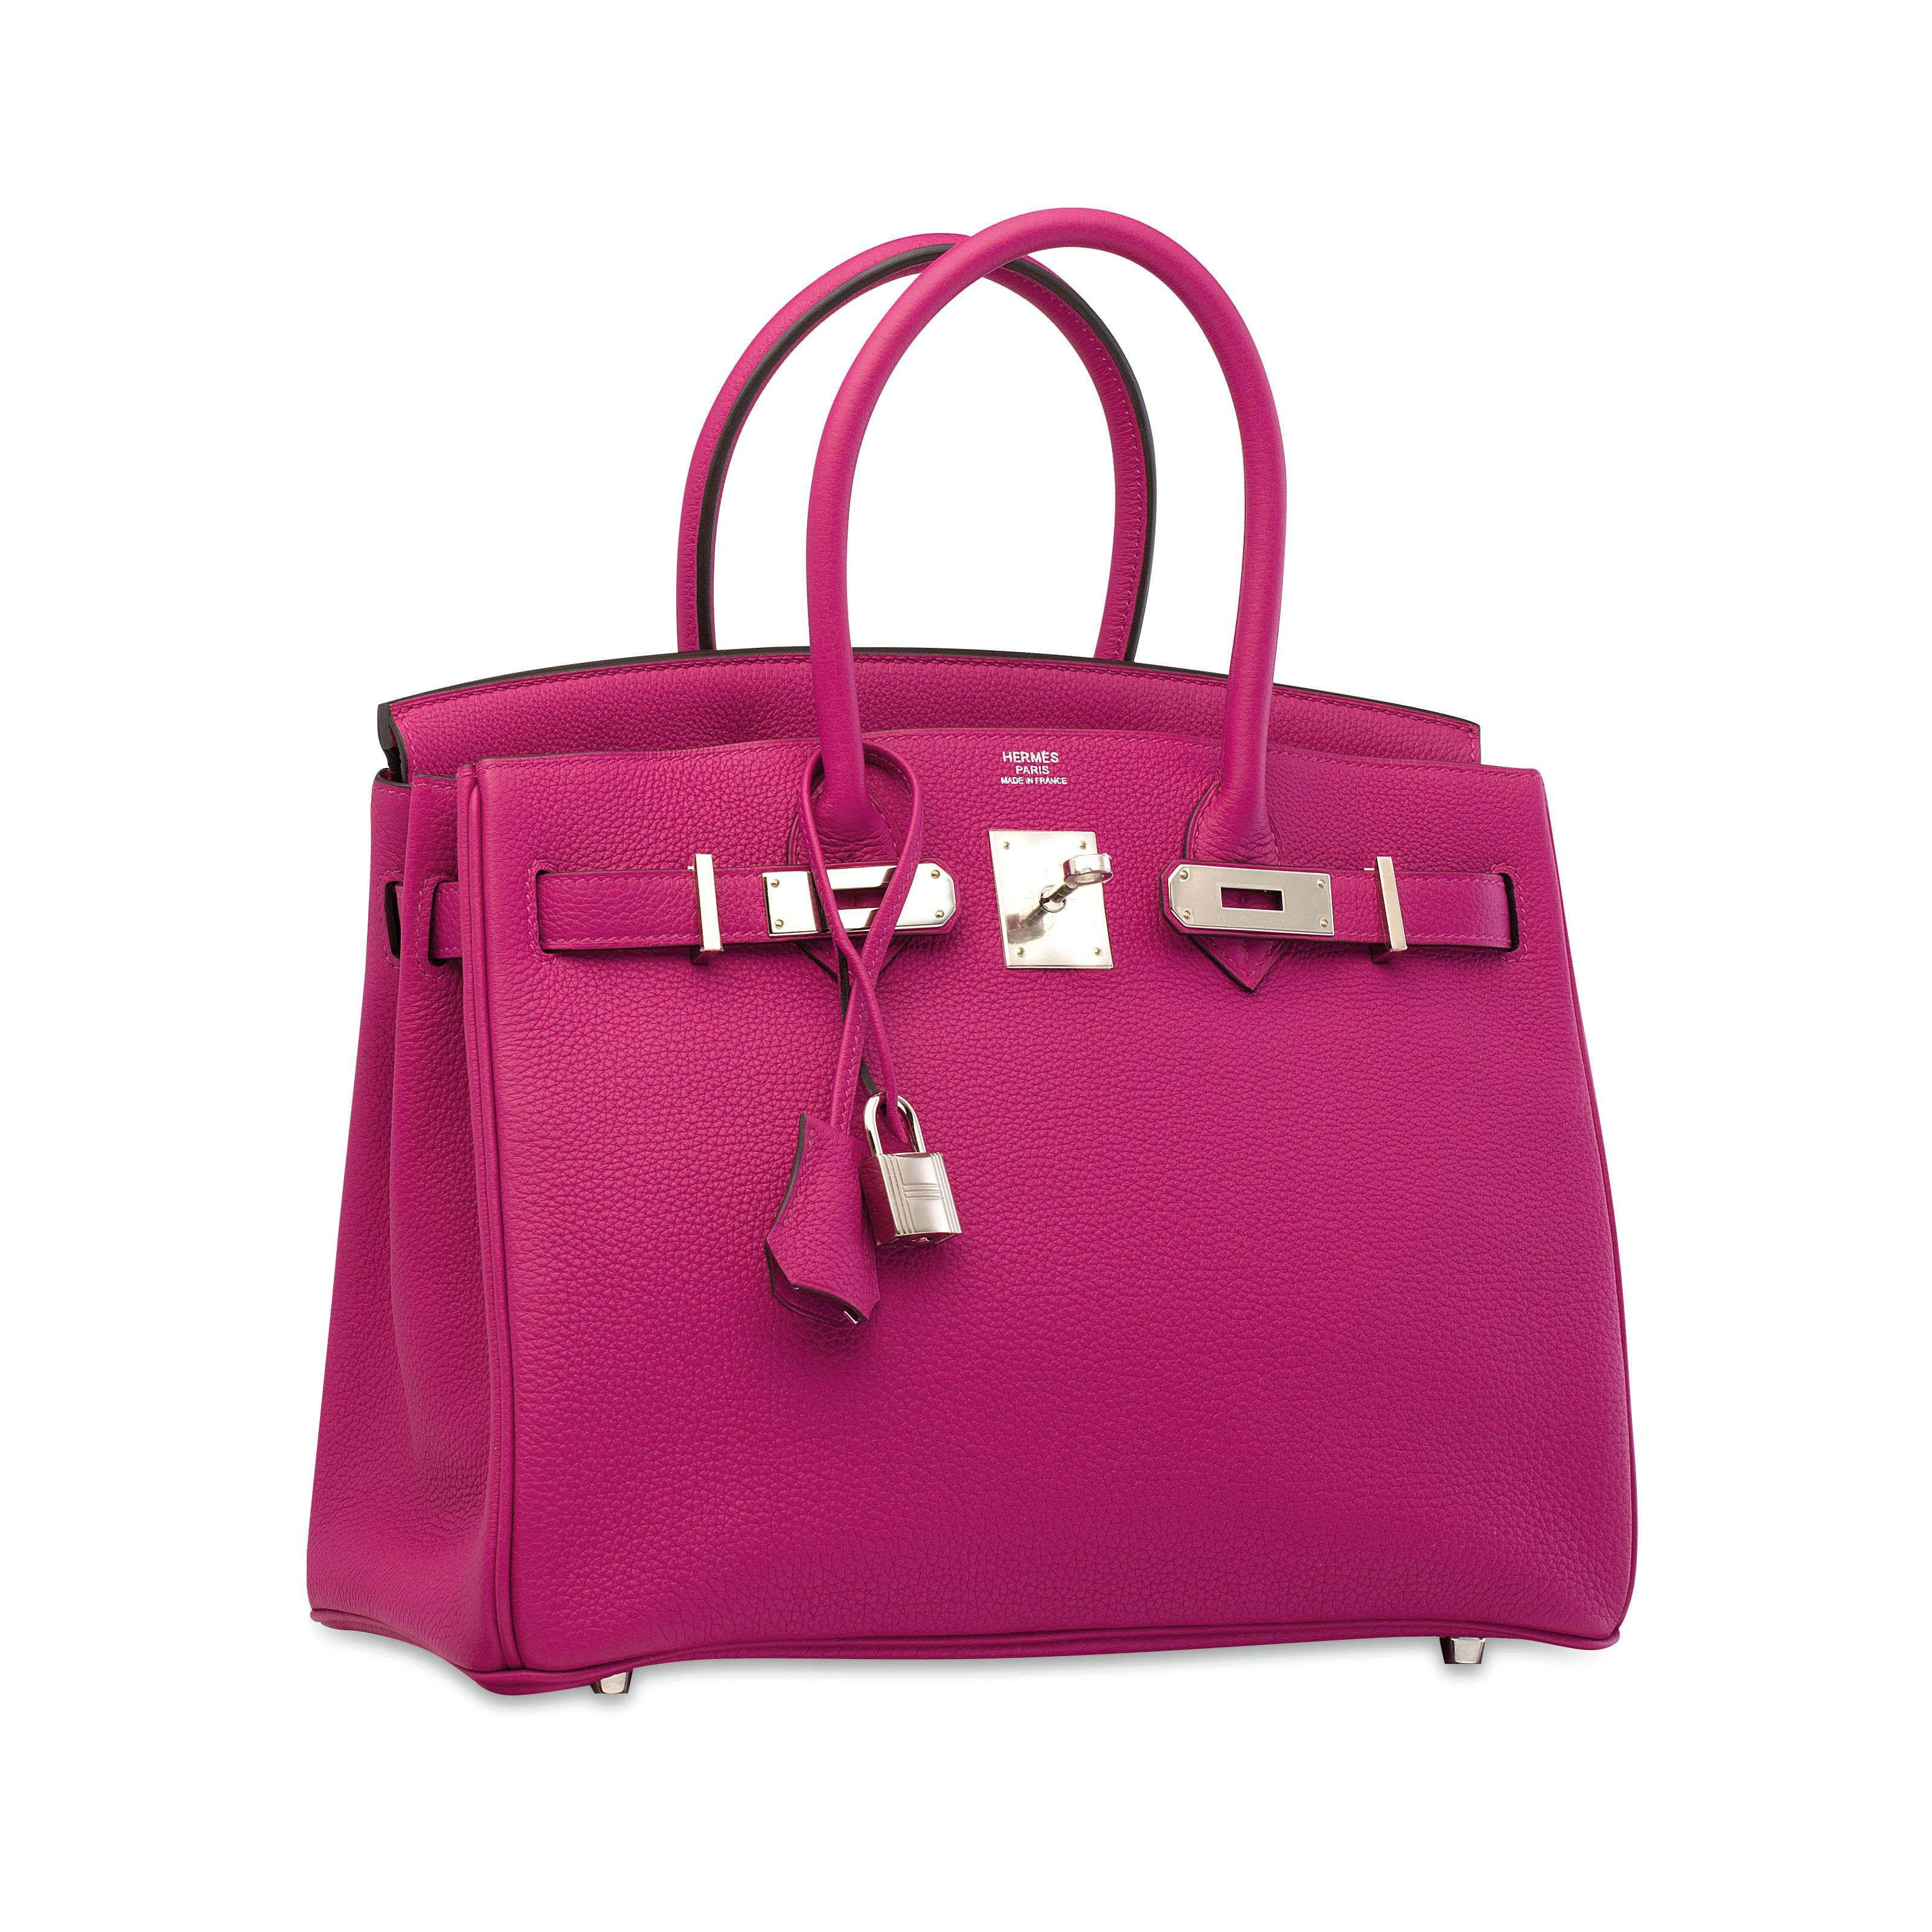 3438ab63d7 A ROSE POURPRE TOGO LEATHER BIRKIN 30 WITH PALLADIUM HARDWARE ...